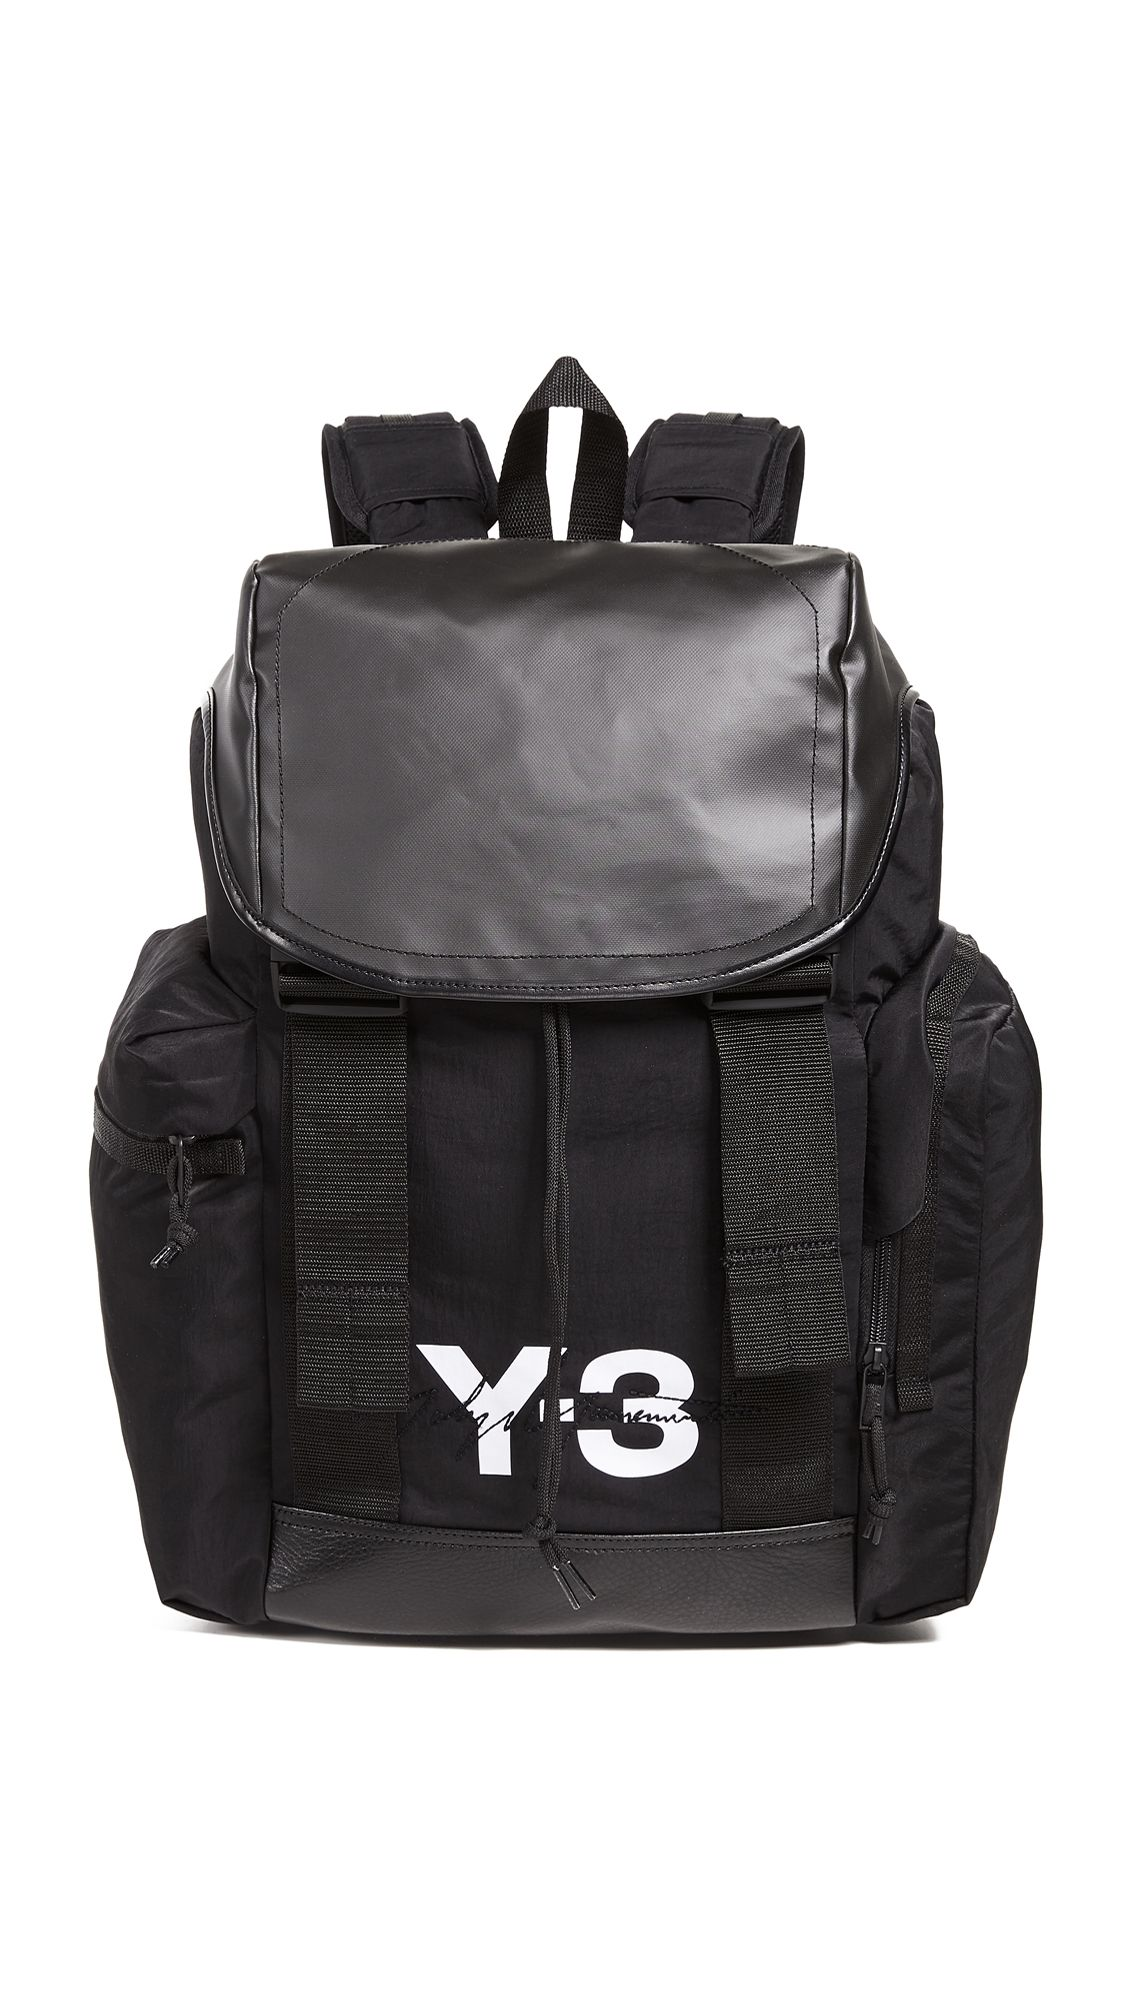 8d6d83d338e3 Y-3 MOBILITY BACKPACK.  y-3  bags  leather  canvas  backpacks